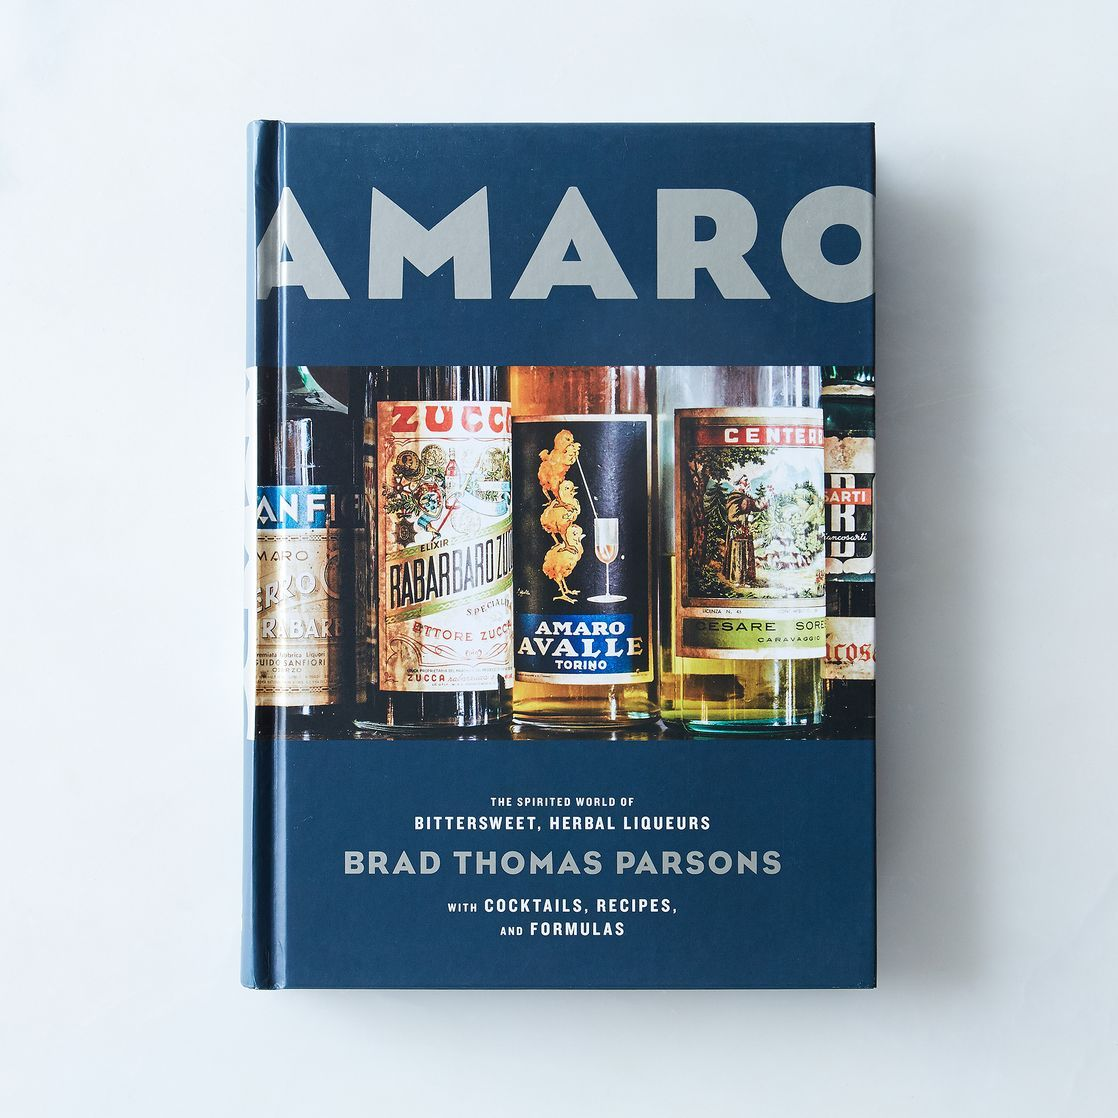 Amaro: The Spirited World of Bittersweet, Herbal Liqueurs, with Cocktails, Recipes, and Formulas, Signed Copy